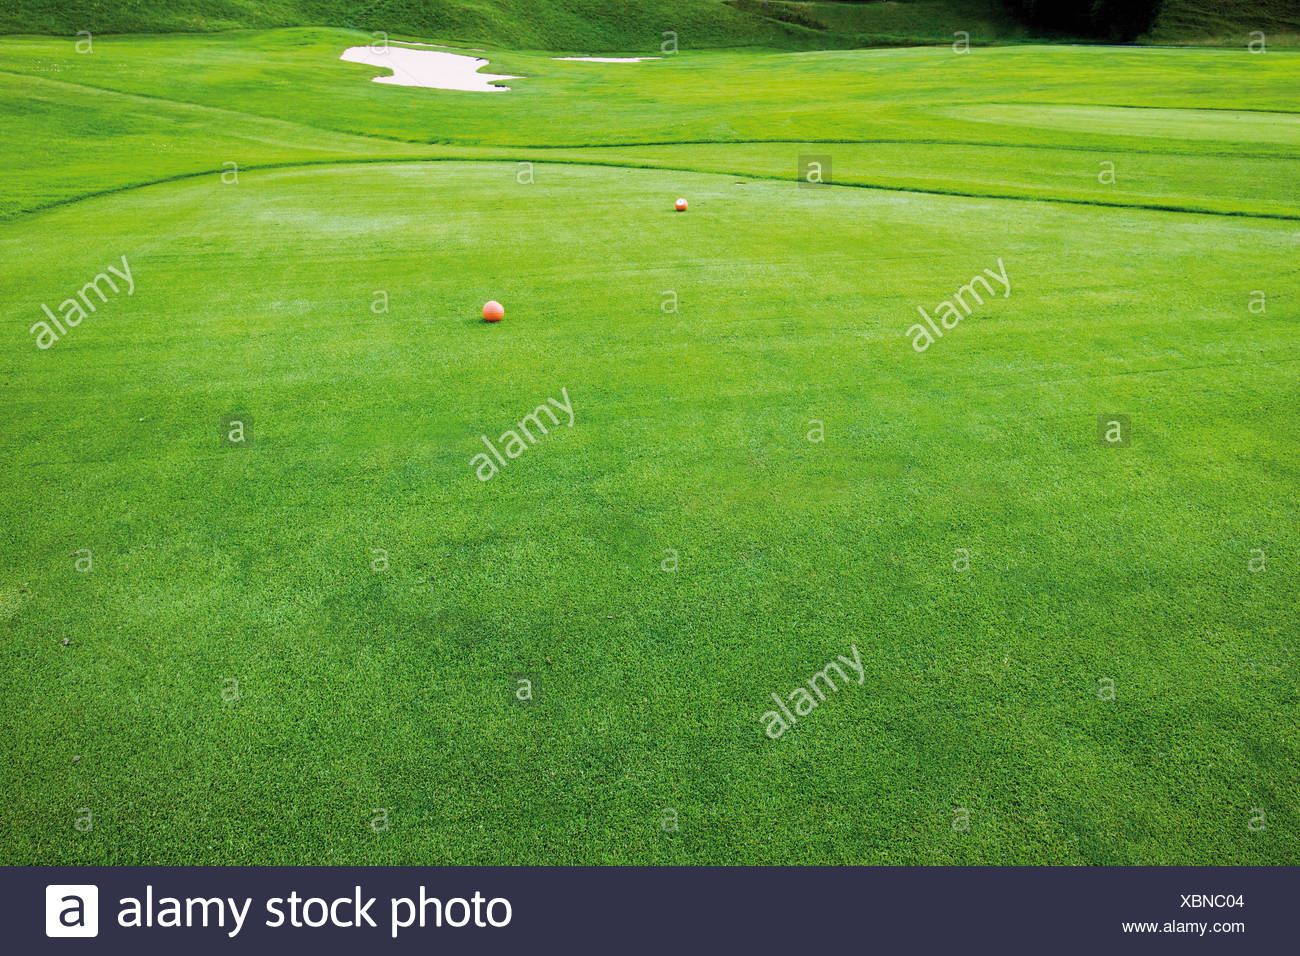 Germany, Bavaria, View of golfball on golfcourse - Stock Image